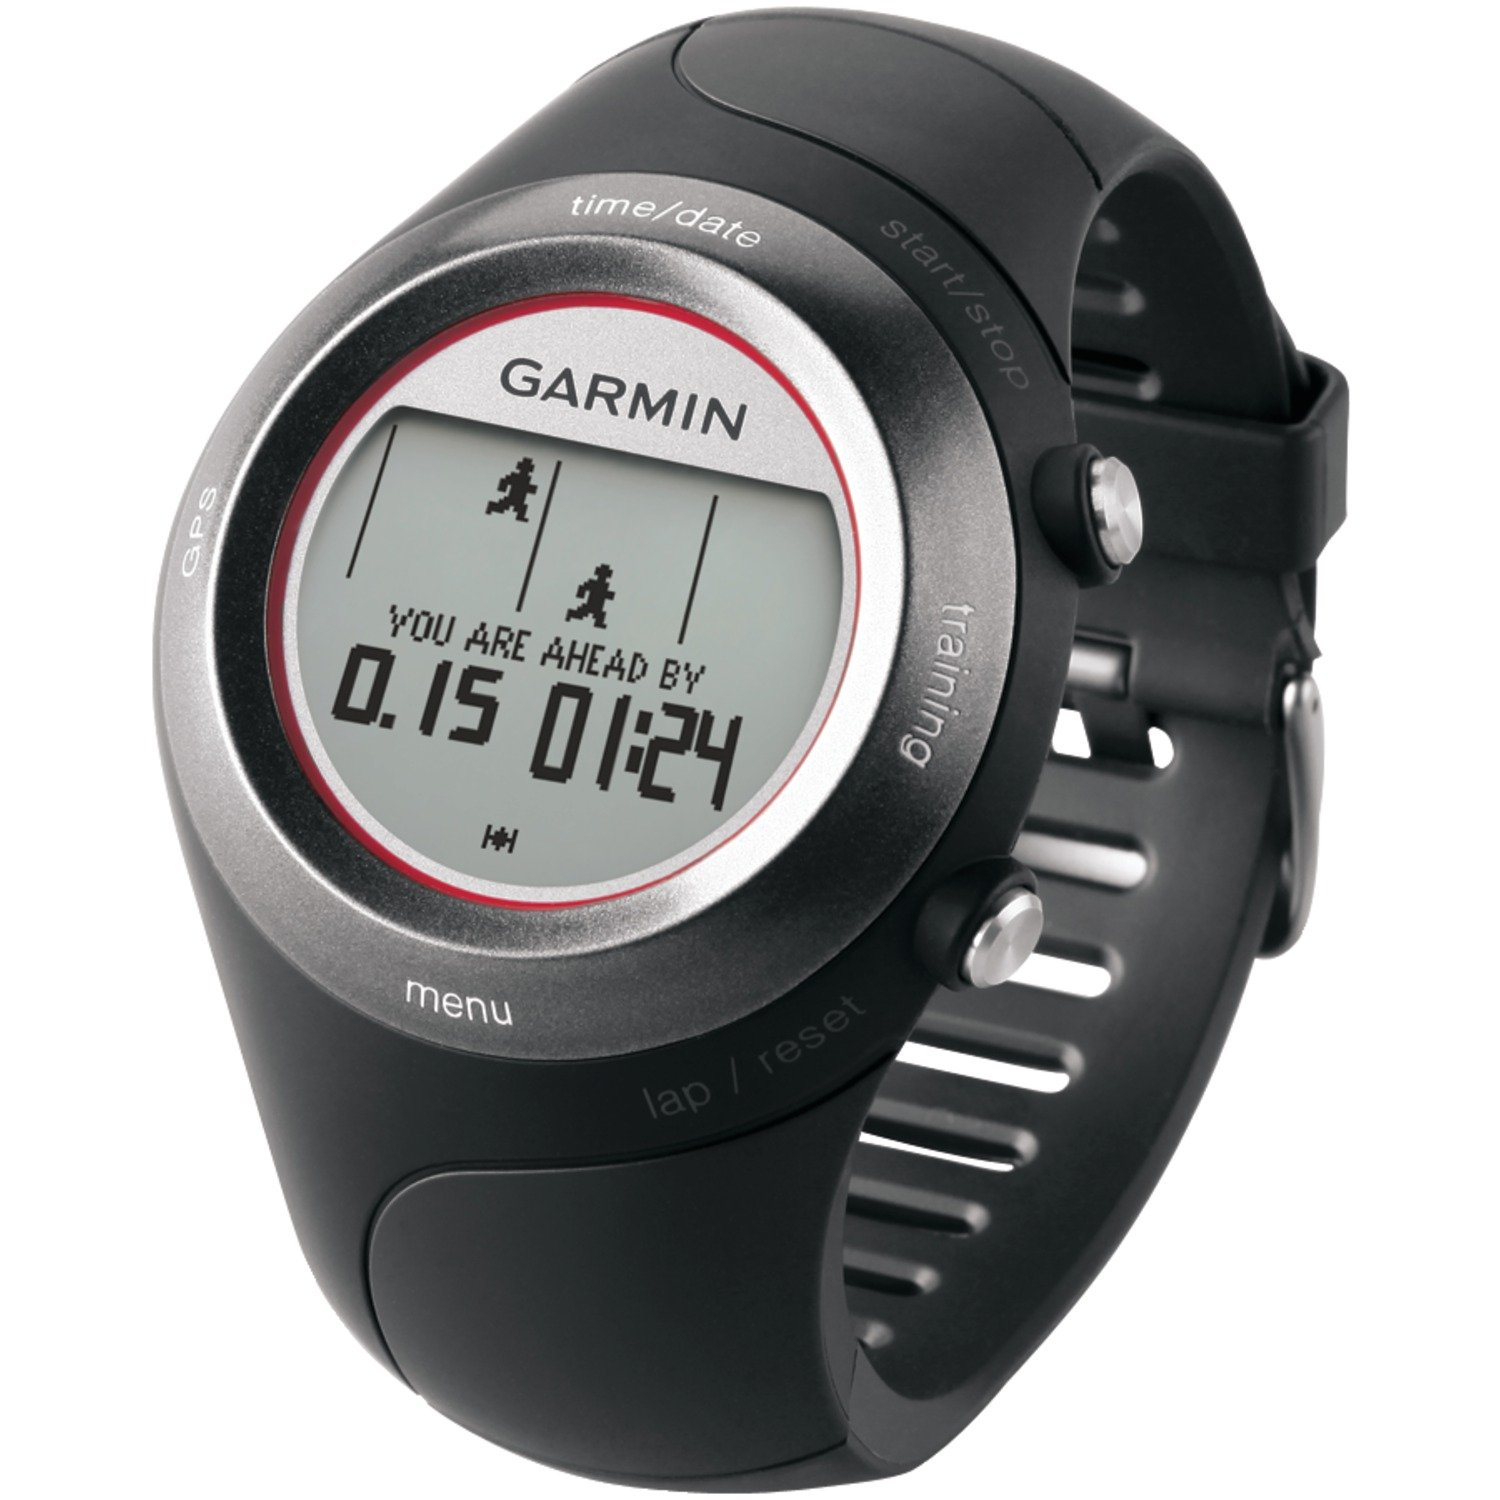 Garmin Forerunner 410 GPS-Enabled Sports Watch with Heart Rate Monitor (Discontinued by Manufacturer)